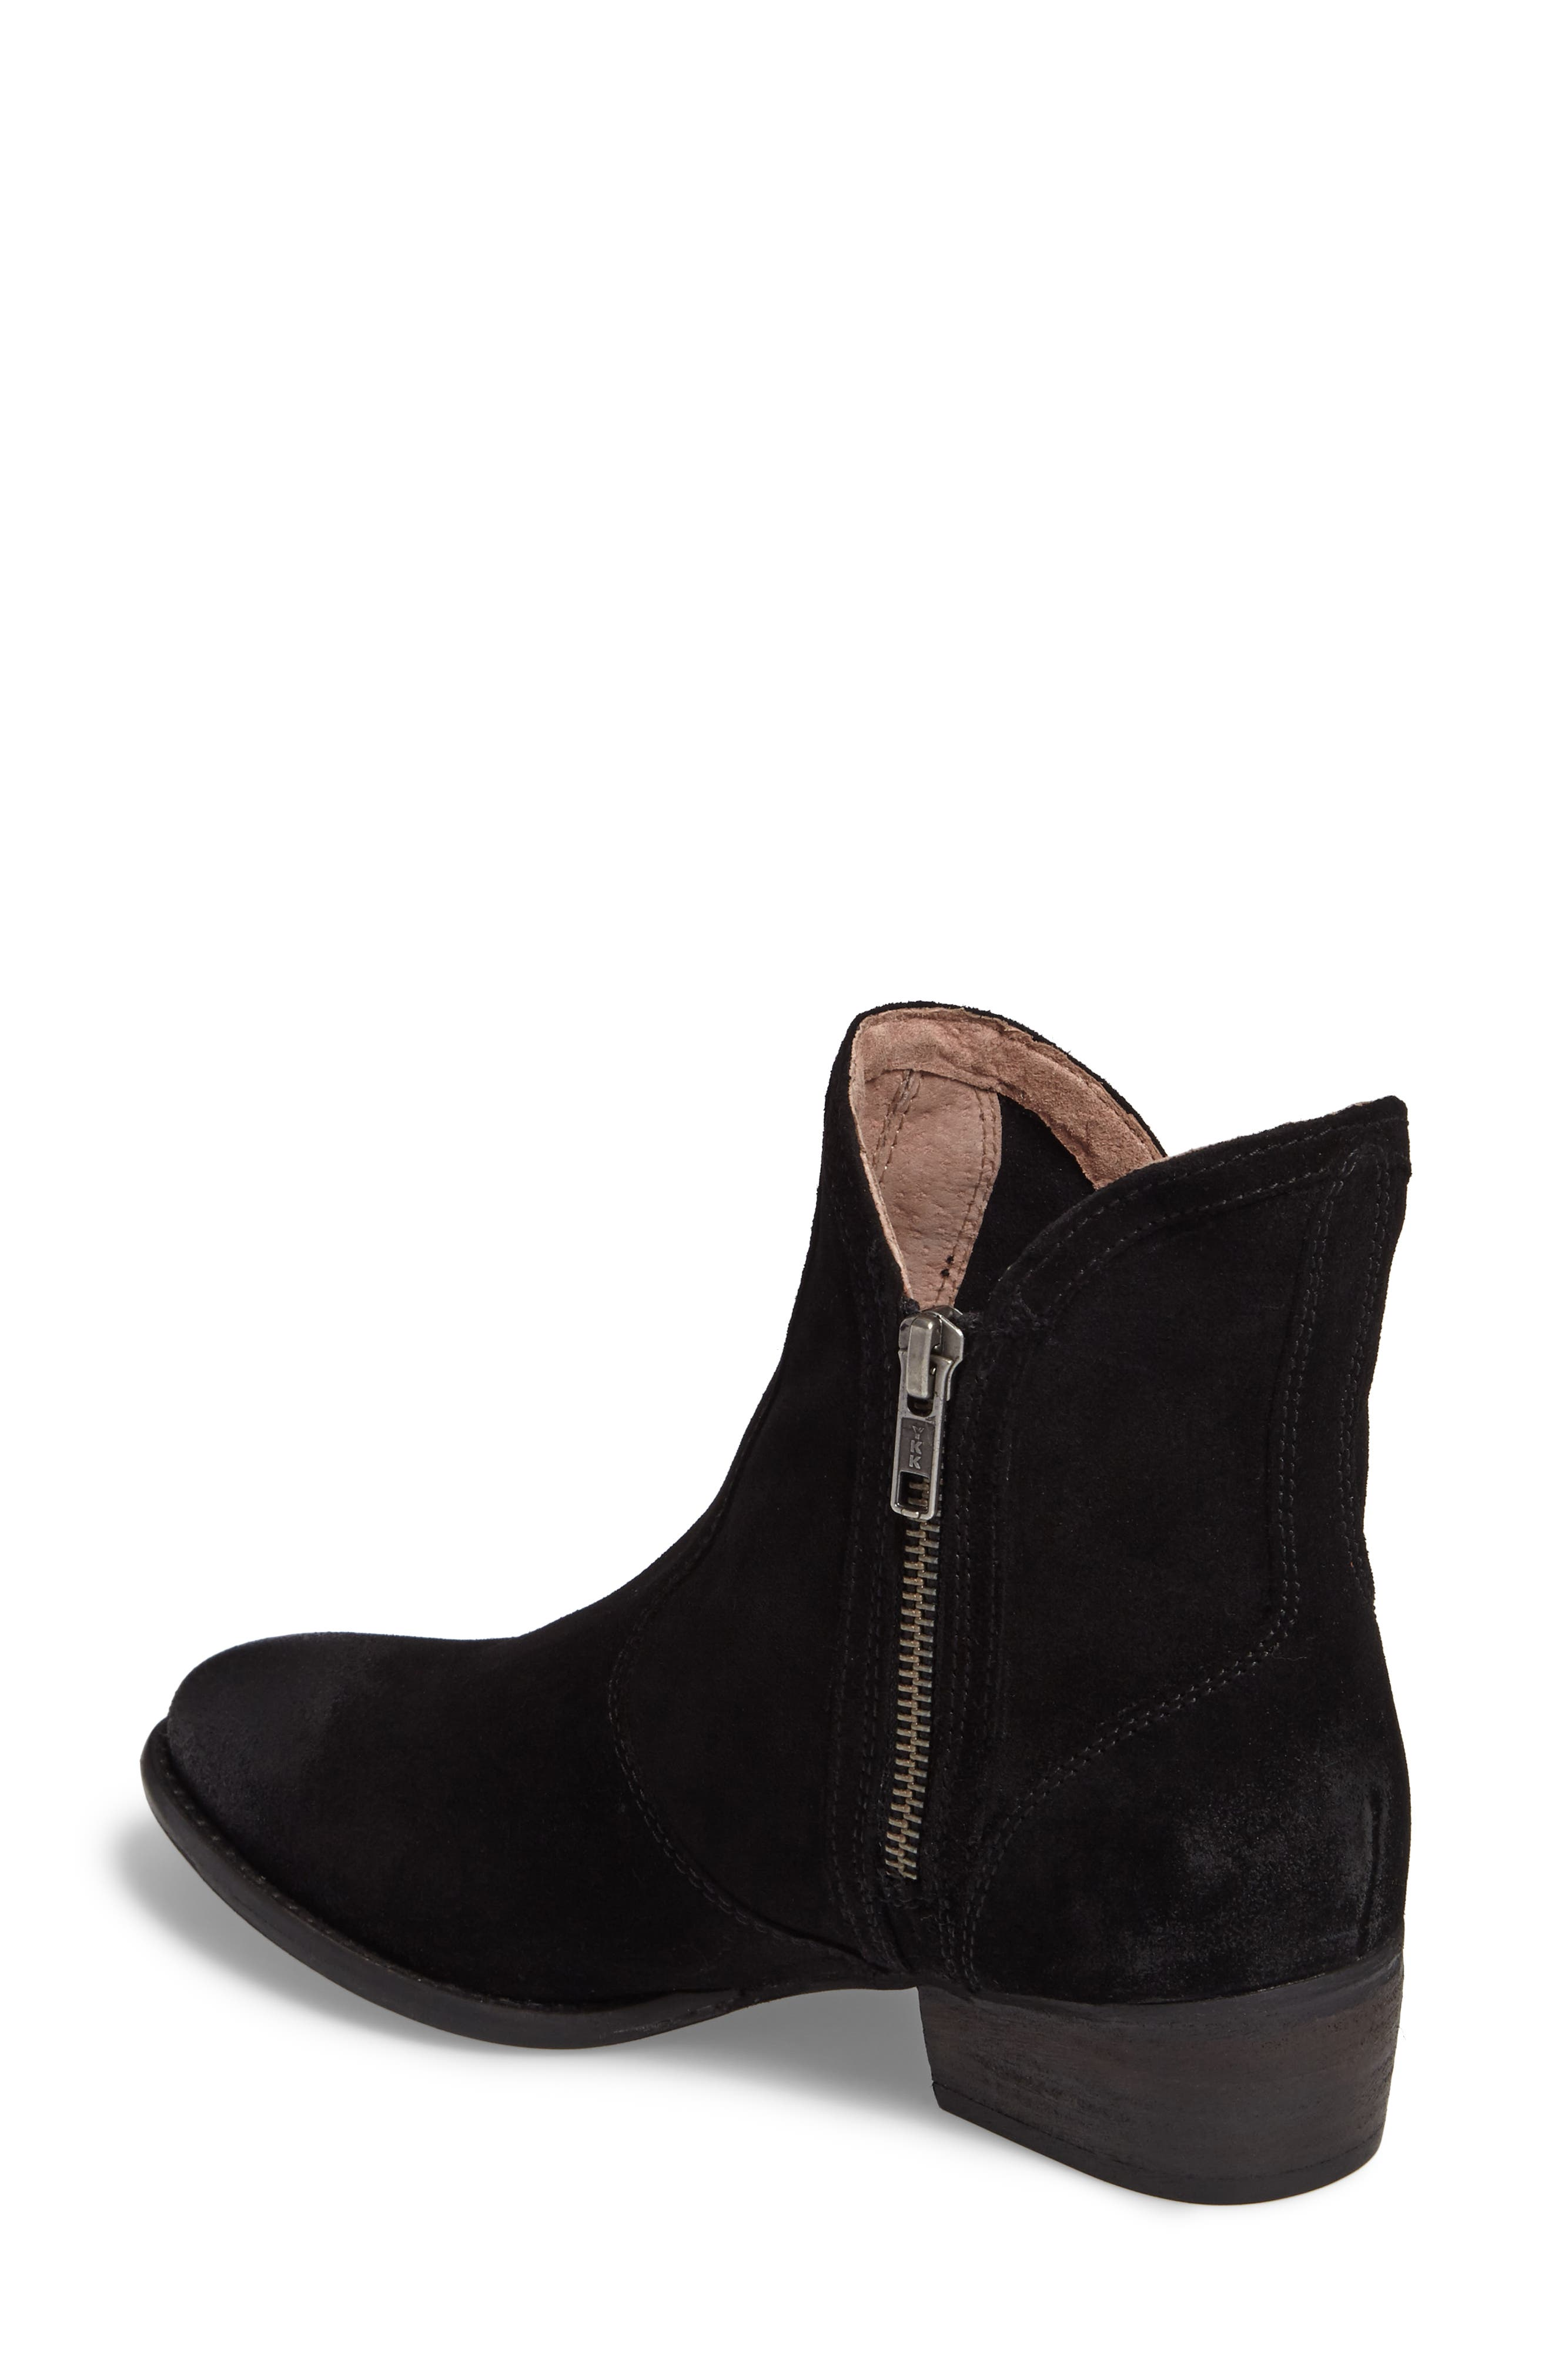 'Lucky Penny' Boot,                             Alternate thumbnail 2, color,                             007